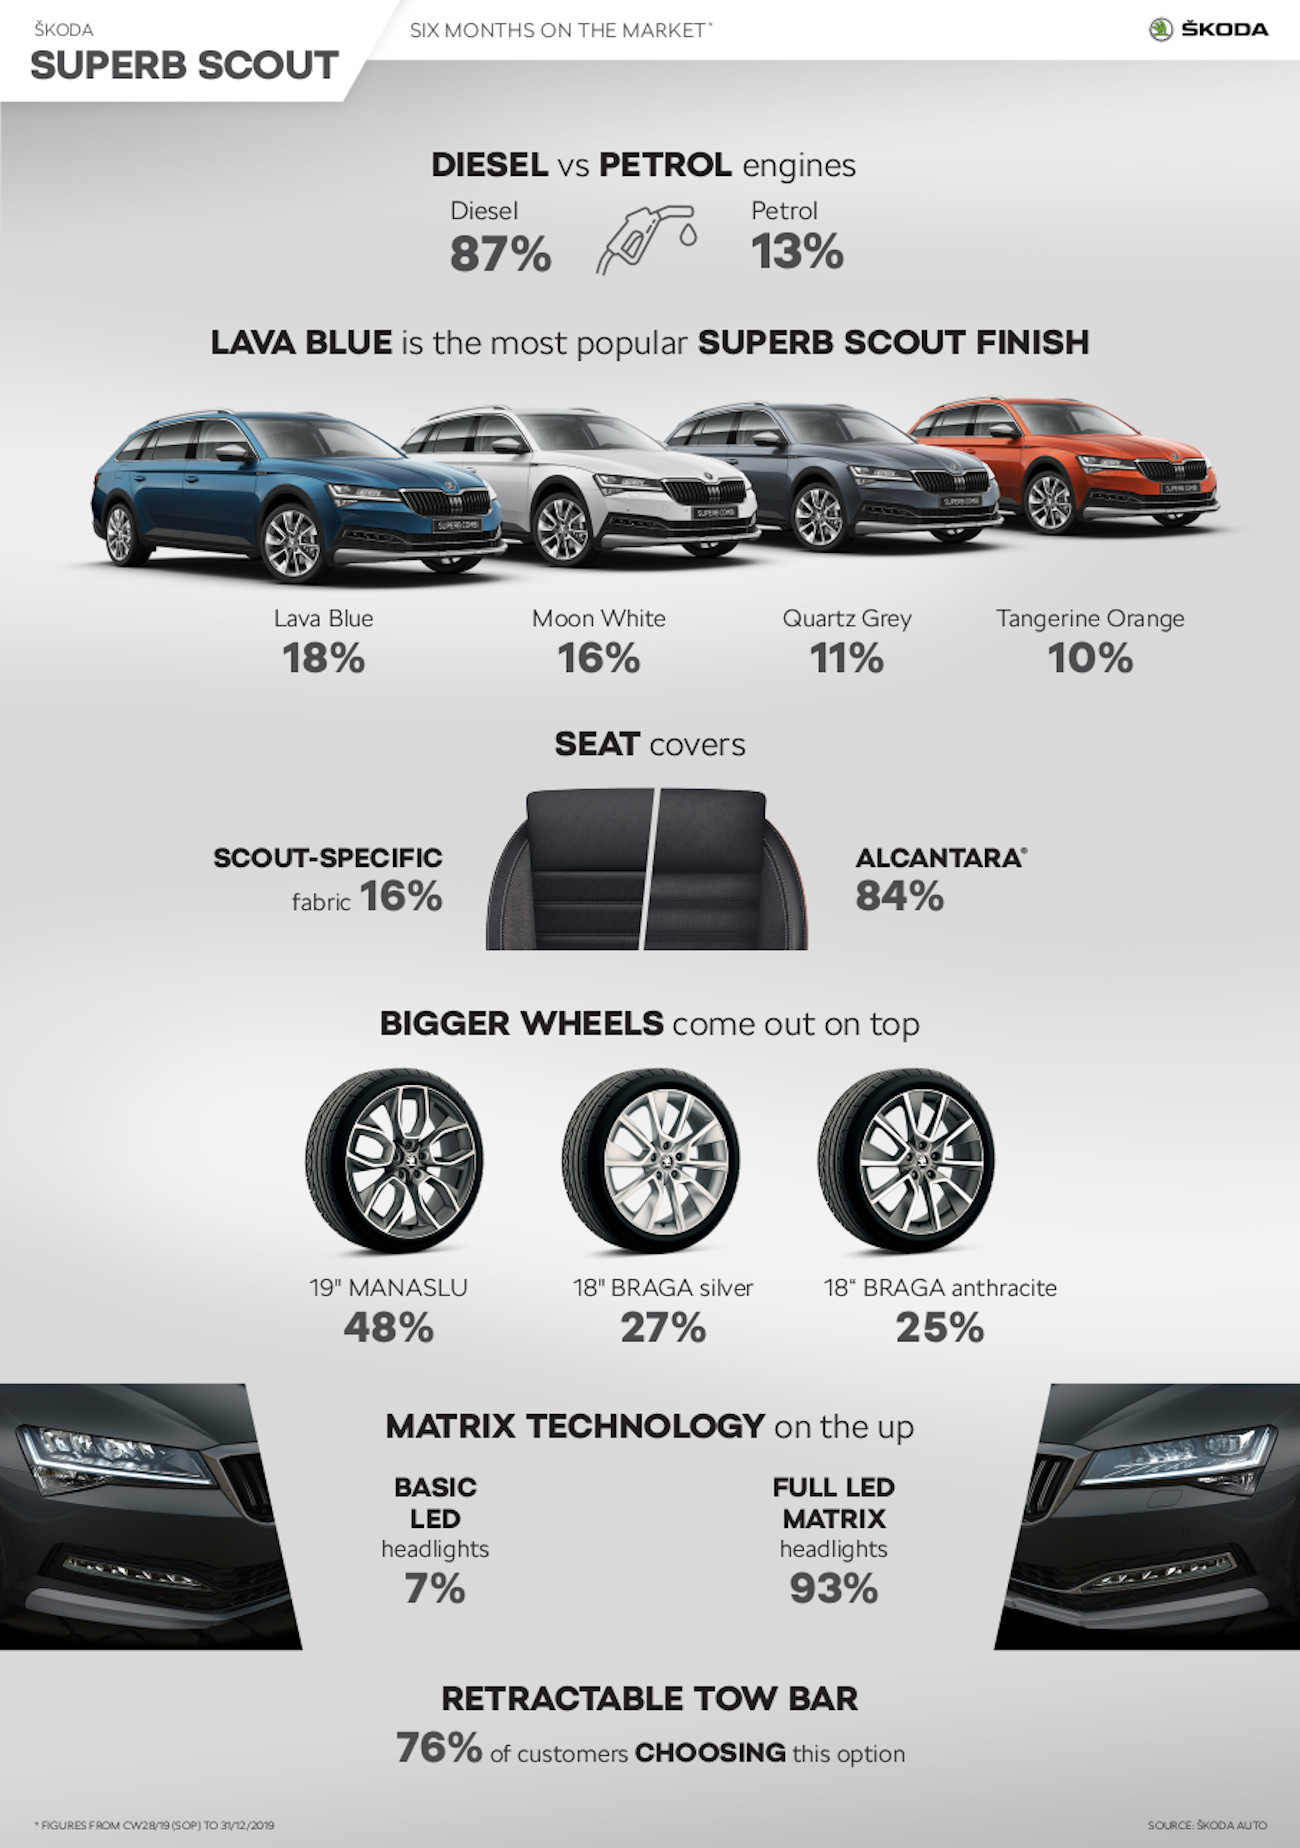 Skoda SUPERB SCOUT Infographic_EN